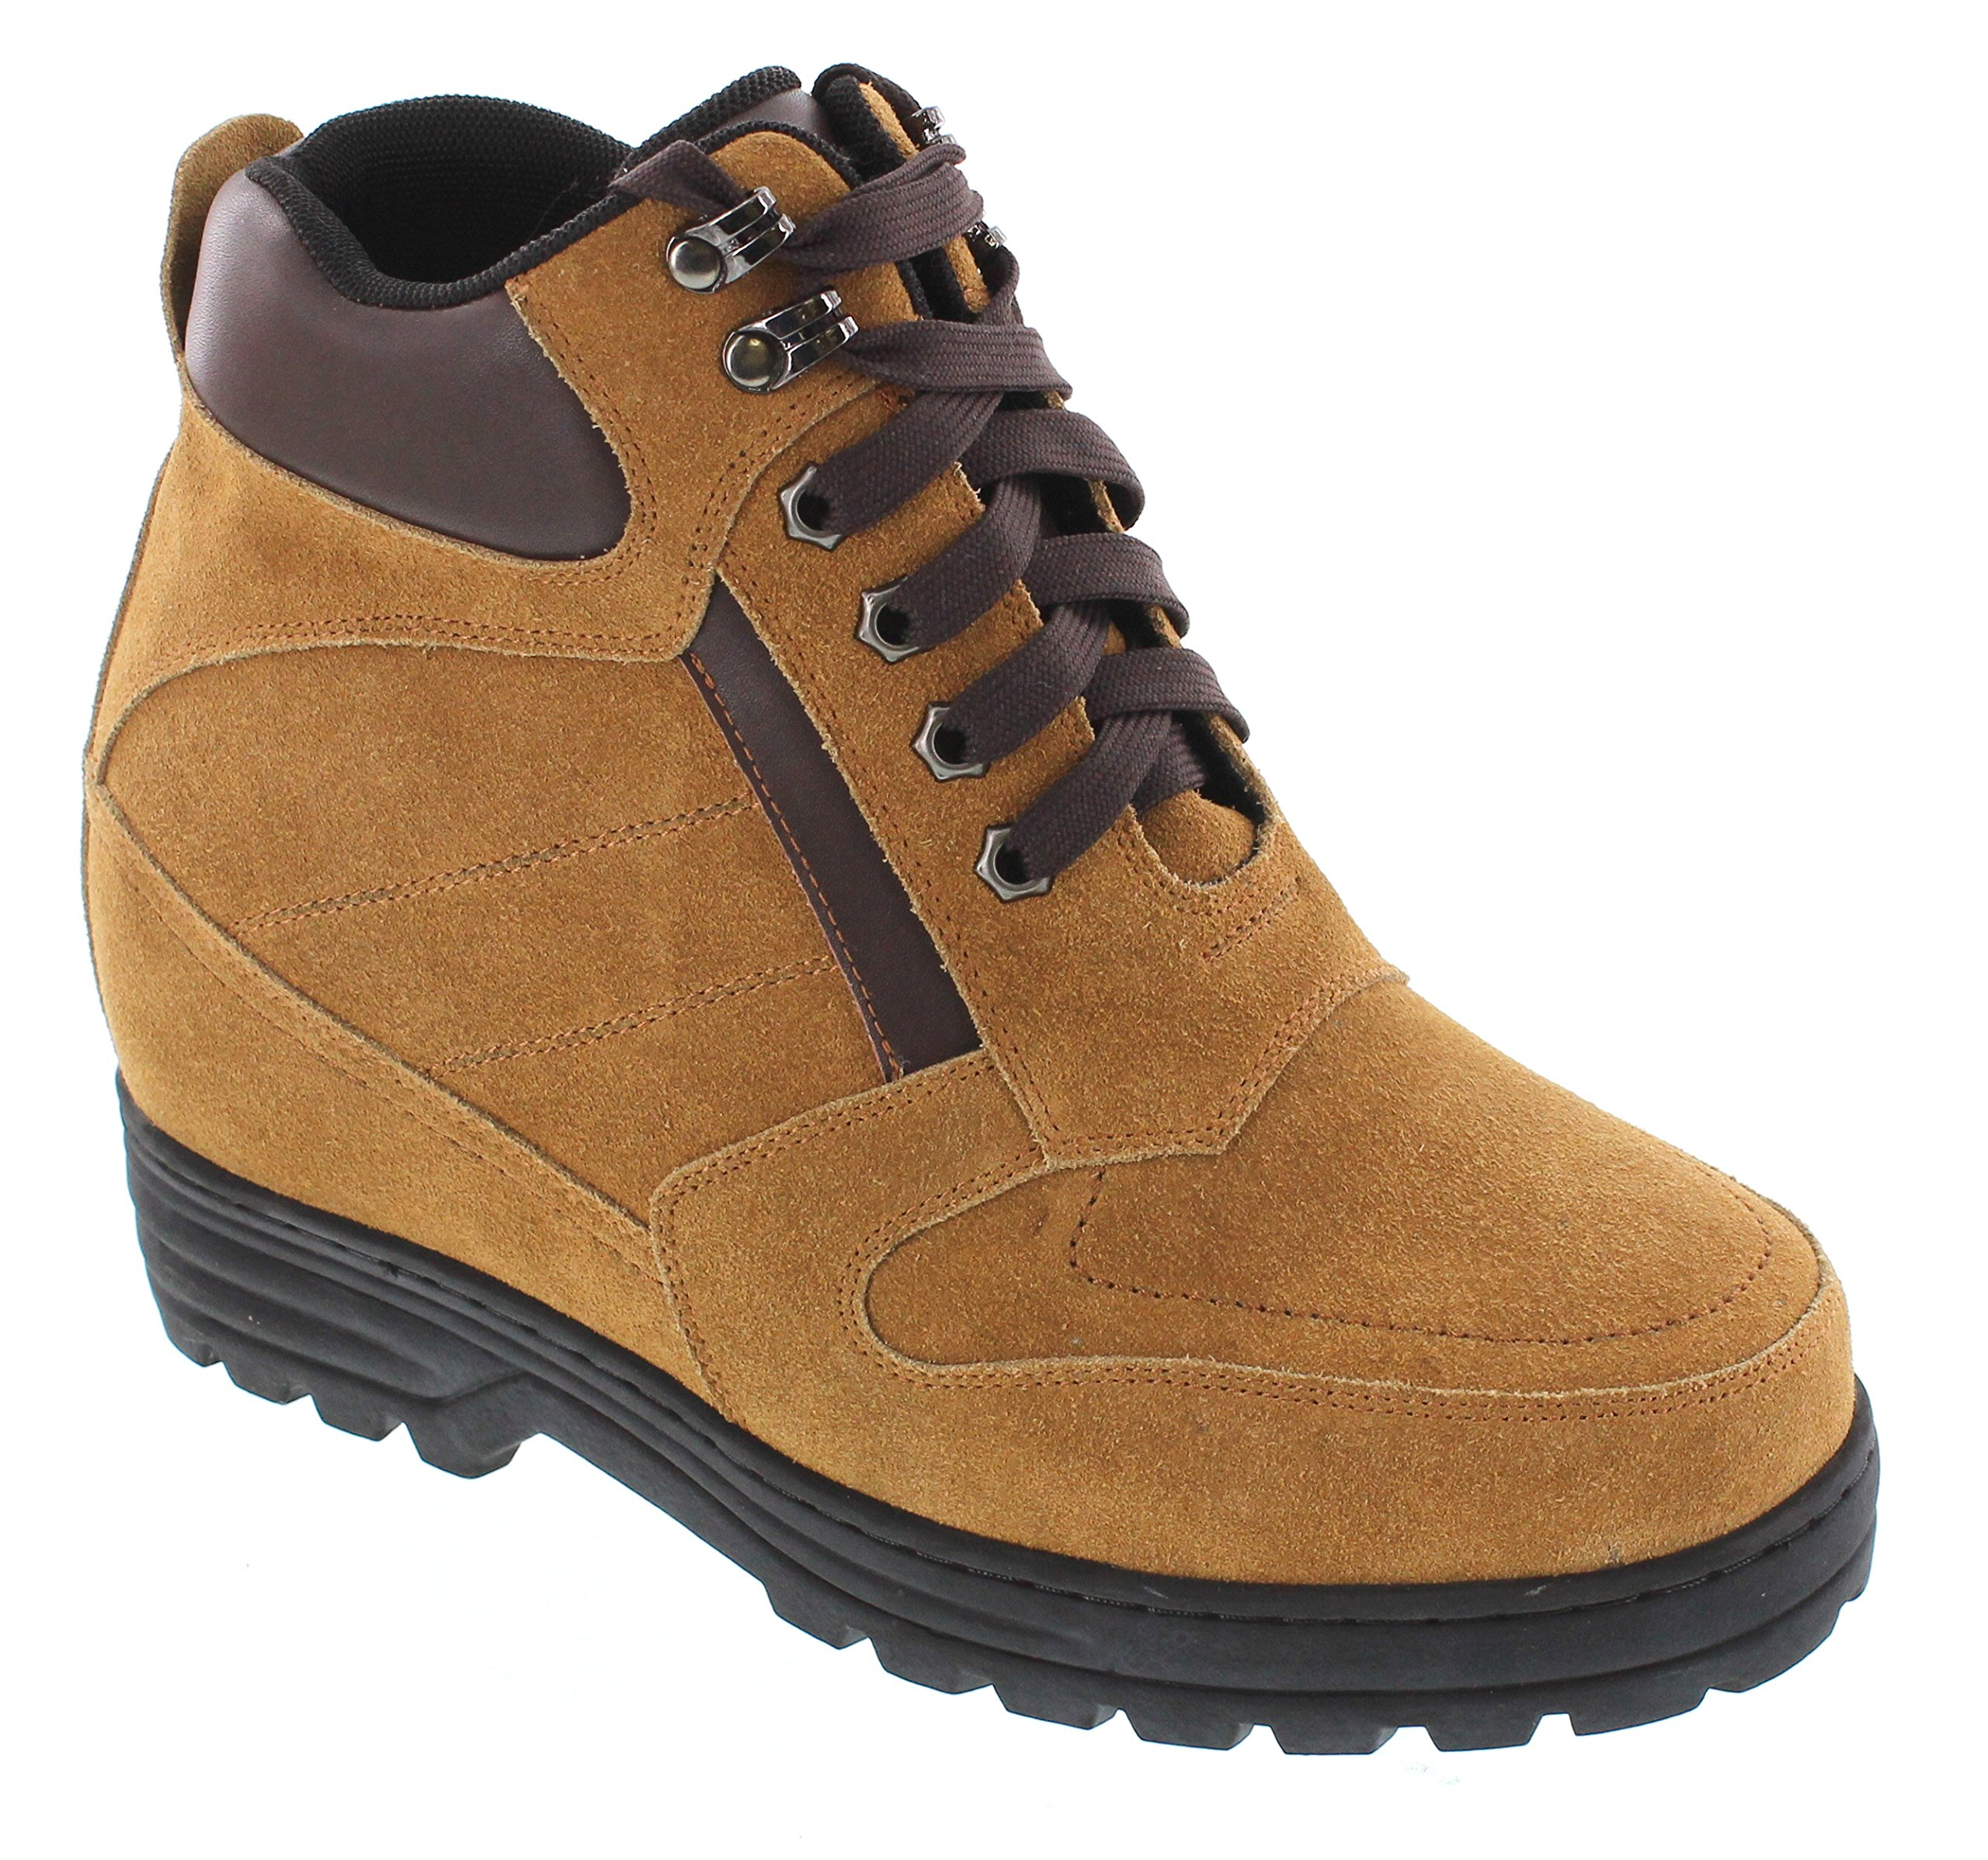 Calden - K881803-5.2 Inches Taller - Size 8 D US - Height Increasing Elevator Shoes (Brown Nubuck Boots)